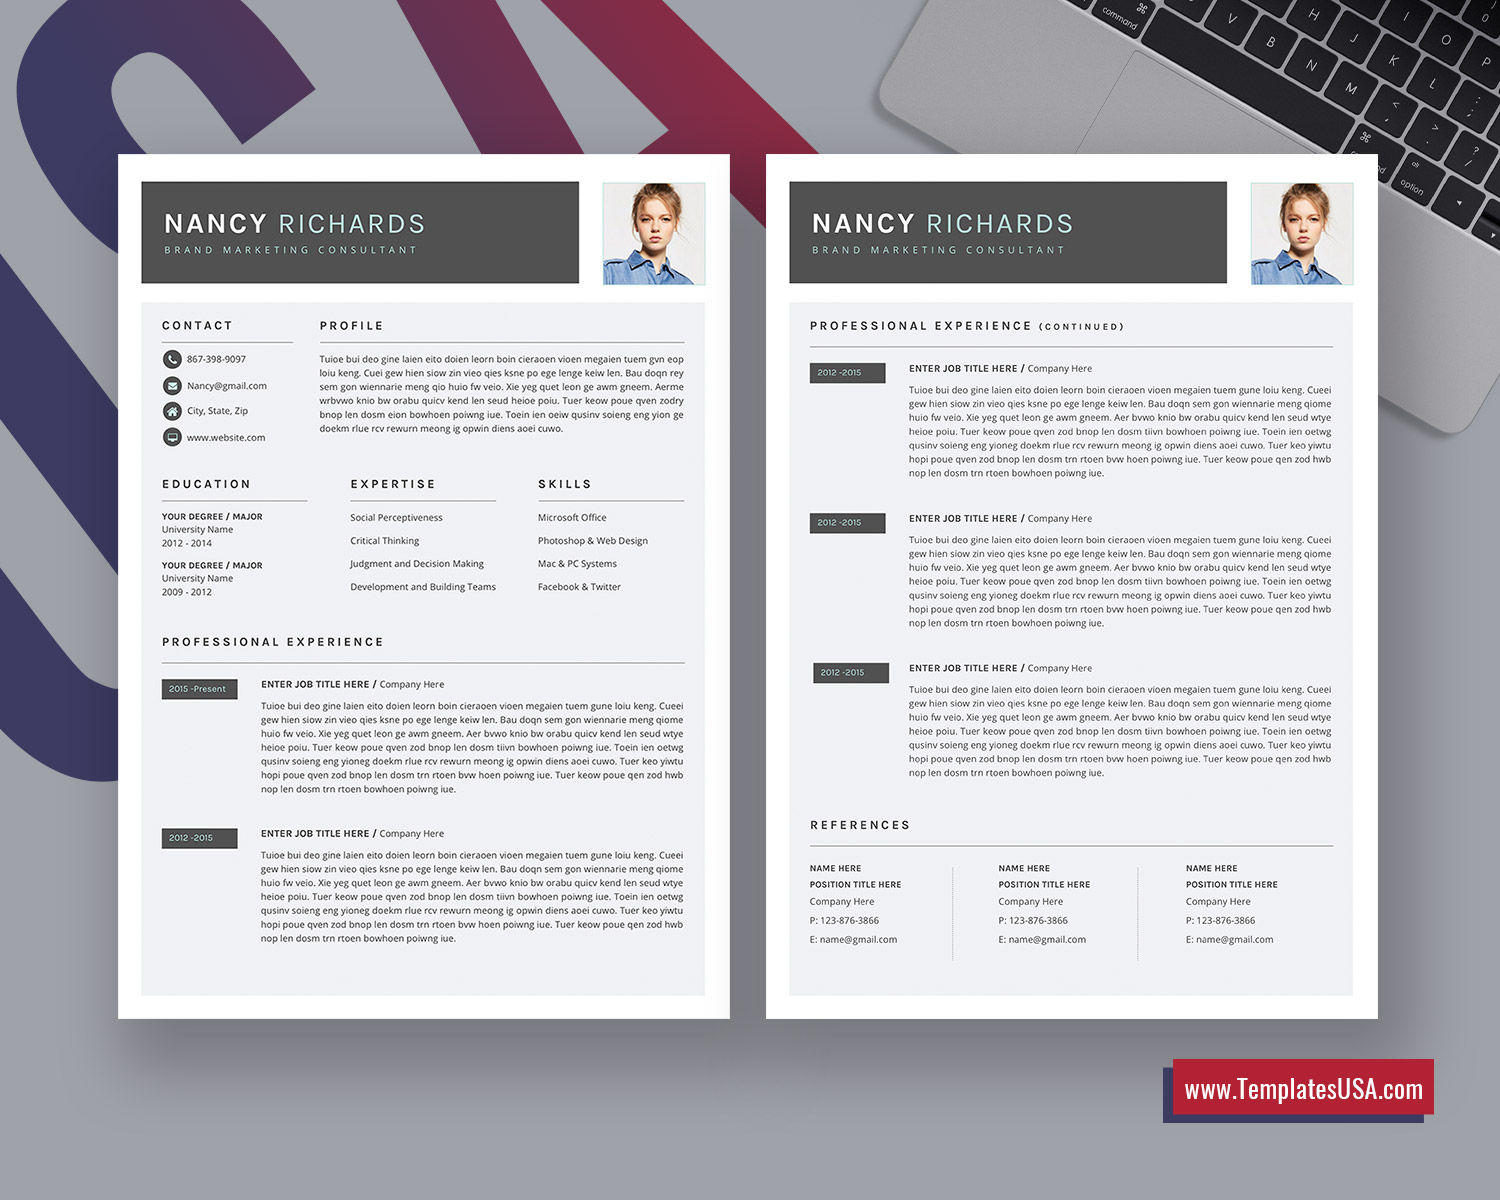 Build resume now boost existing resume. Modern Resume Template For Ms Word Creative Cv Template Professional Resume Format Unique Resume Editable Resume Design 1 3 Page Resume Template For Job Application Instant Download Templatesusa Com